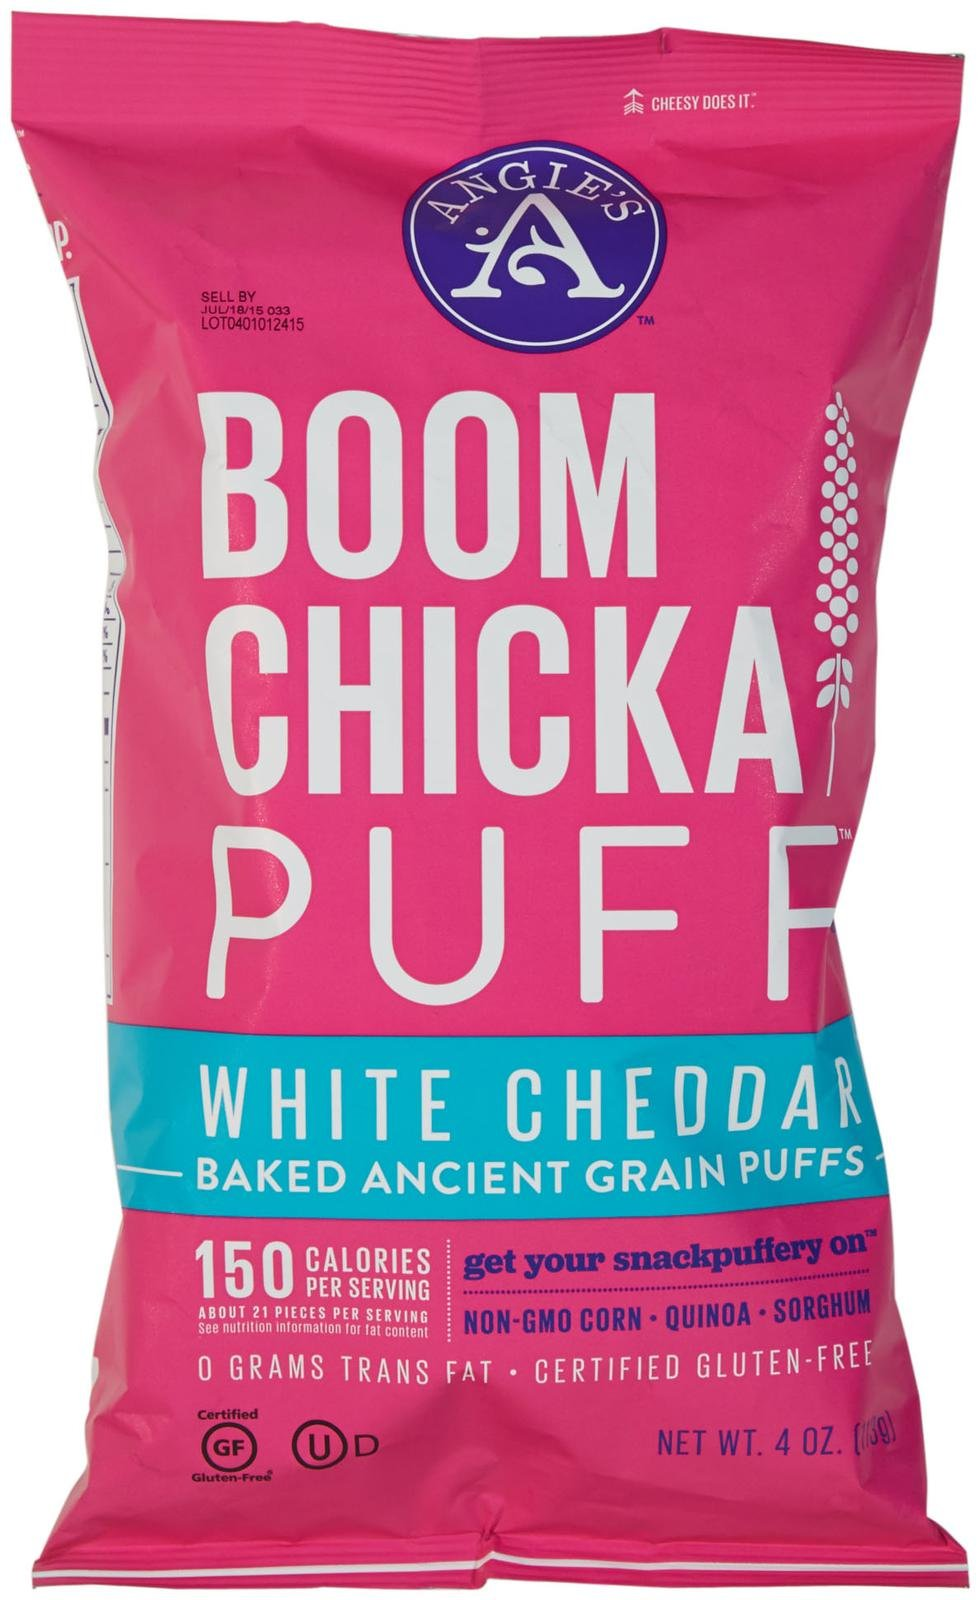 Angies Artisan Treats BoomChickaPuff White Cheddar 4 oz